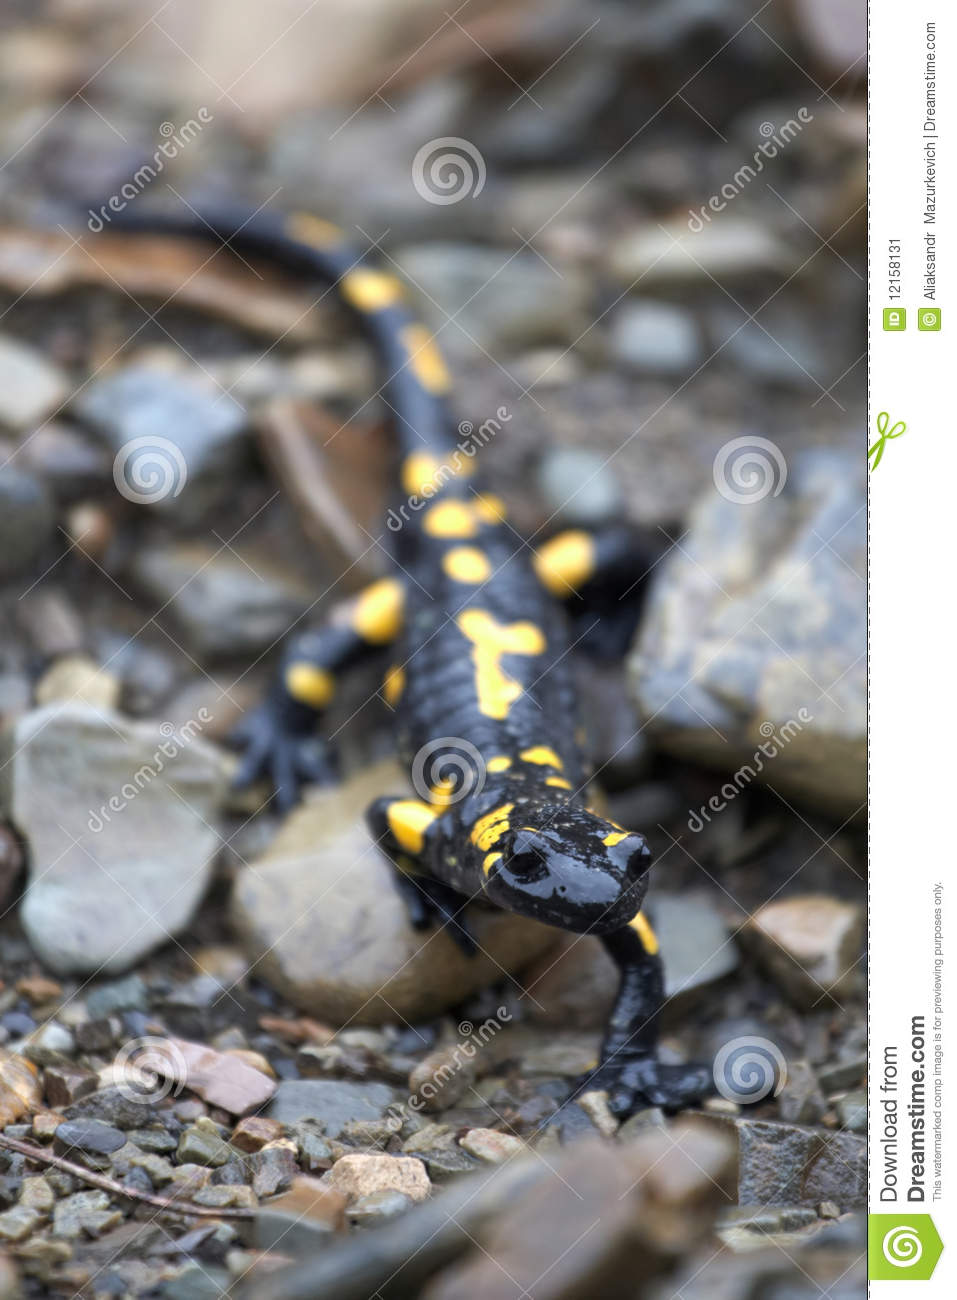 salamander on the stones stock image image of natural 12158131